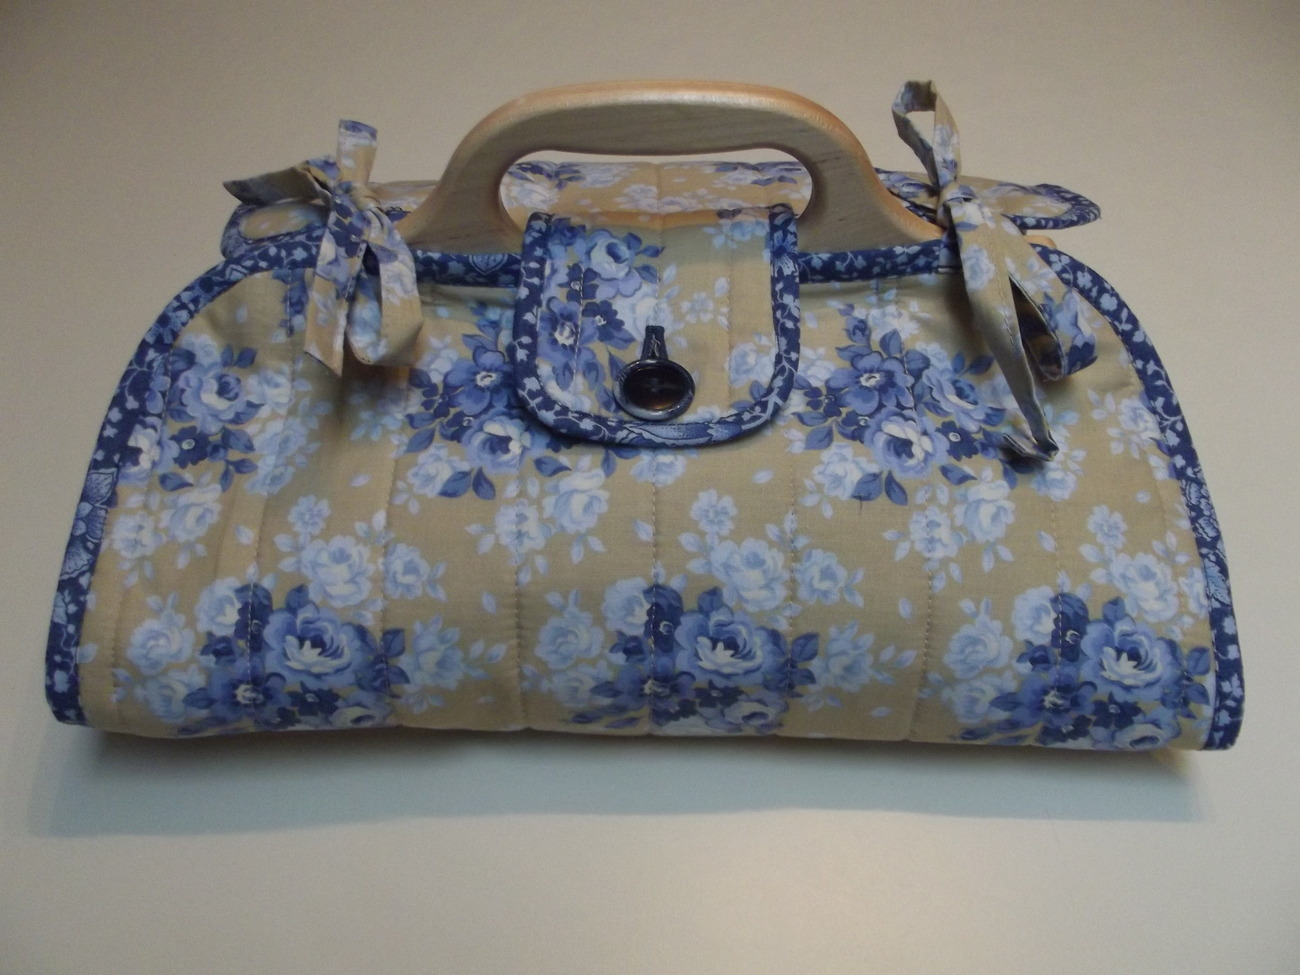 e of a Kind Handmade Quilted Floral Casserole Tote Other